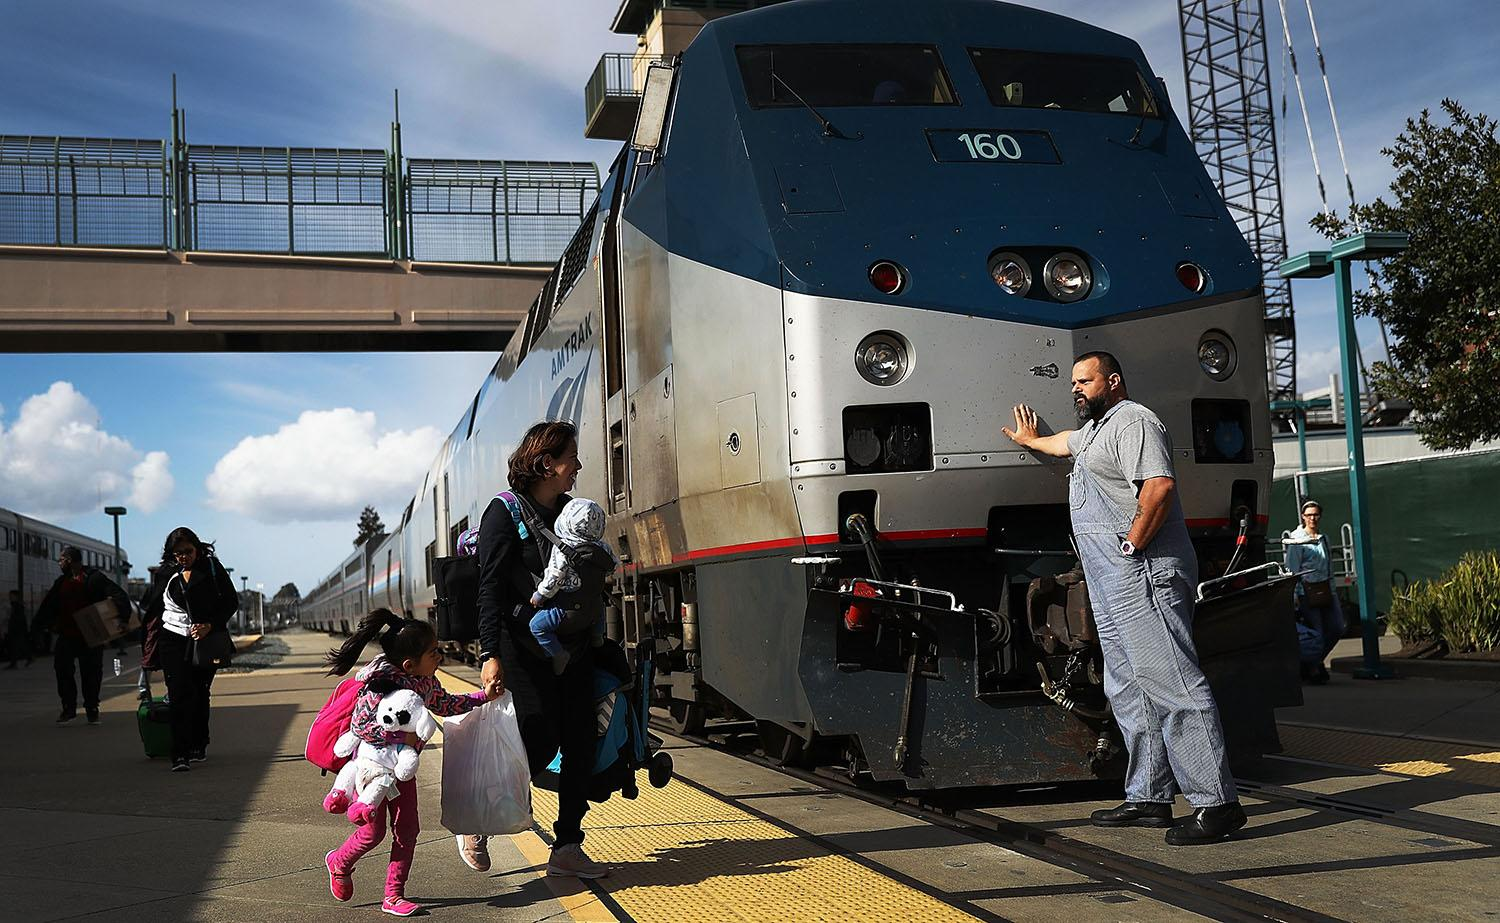 <p>An Amtrak engineer leans on the locomotive as passengers disembark from Amtrak's California Zephyr at the end of its daily 2,438-mile trip to Emeryville/San Francisco from Chicago, which took roughly 52 hours, March 25, 2017, in Emeryville, Calif. President Trump has proposed a national budget that would terminate federal support for Amtrak's long distance train services, which would affect the California Zephyr and other long-distance rail lines run by Amtrak. (Photo: Joe Raedle/Getty Images) </p>